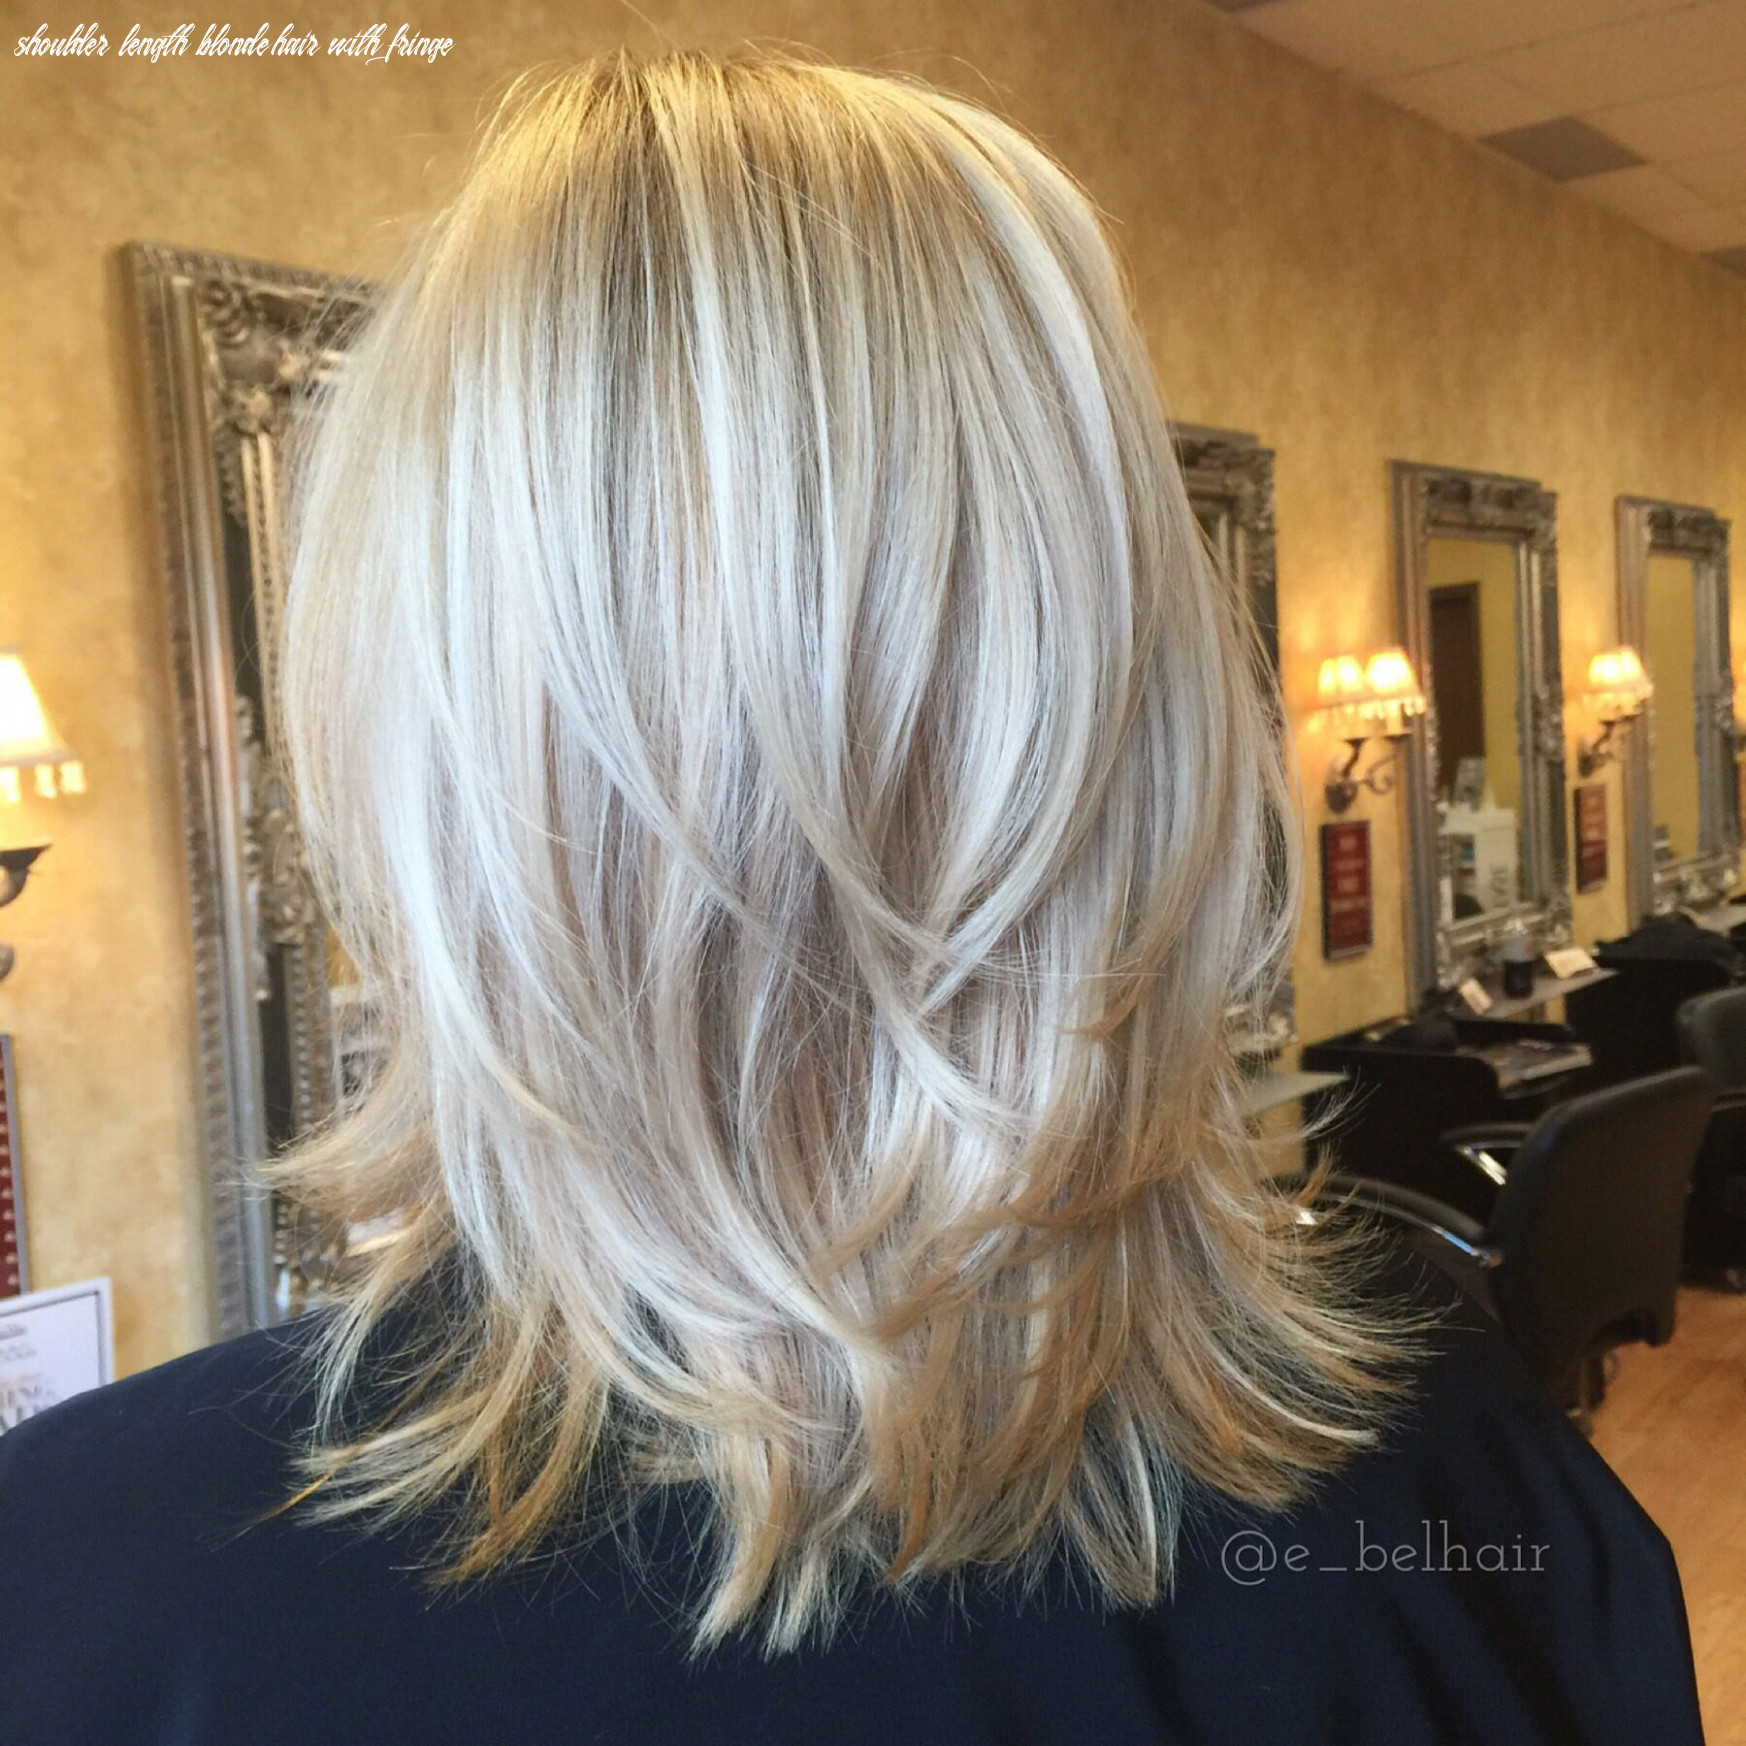 Pin on all things beauty shoulder length blonde hair with fringe